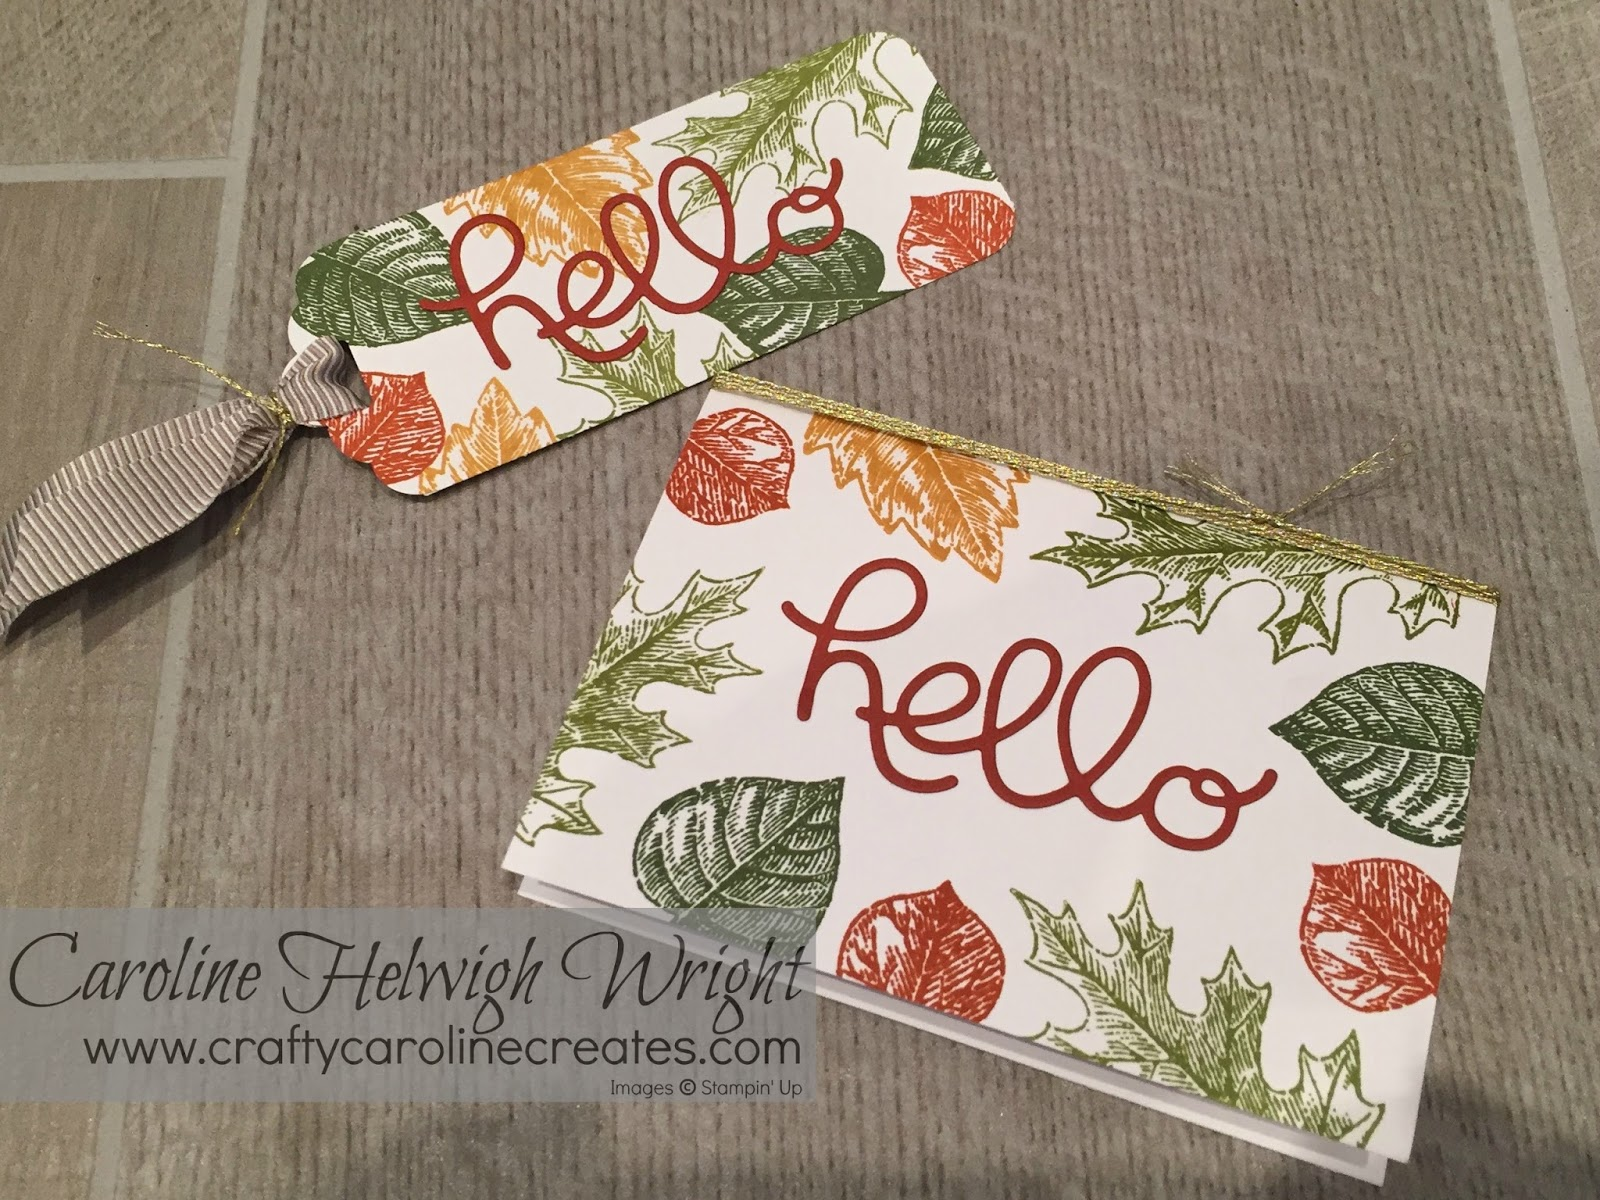 Craftycarolinecreates Hello Handmade Card With Vintage Leaves By